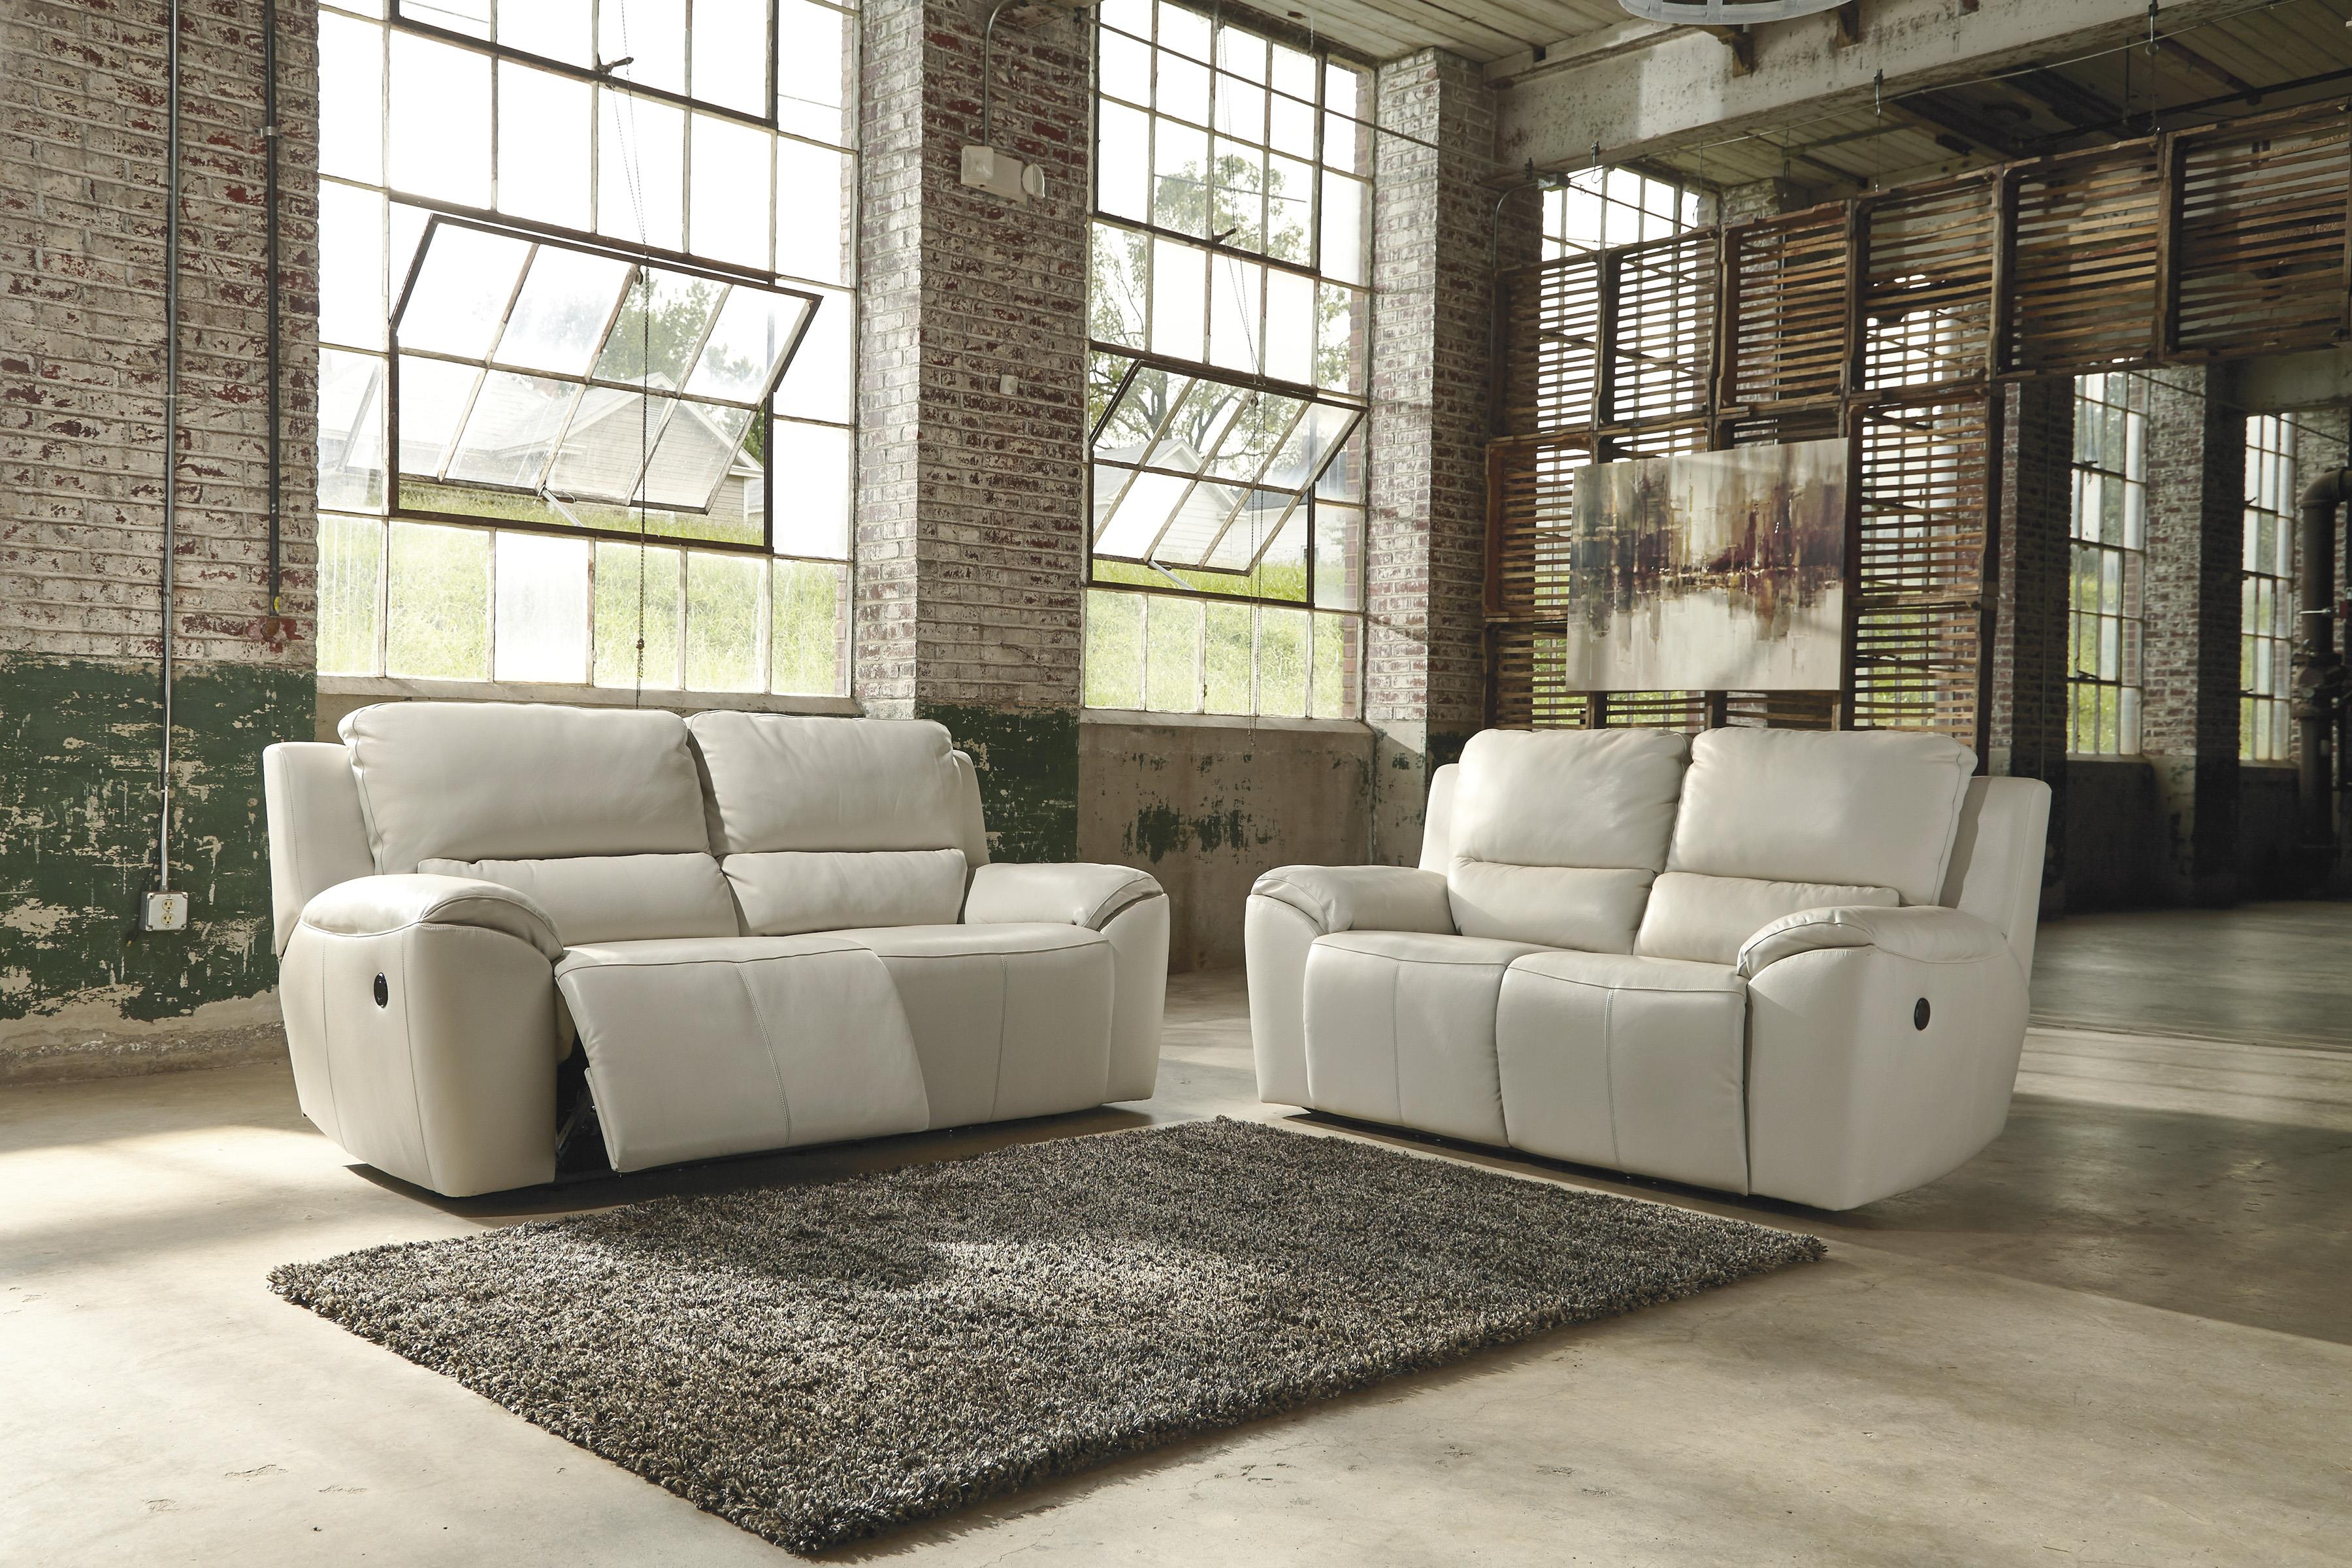 Signature Design by Ashley Valeton Reclining Living Room Group - Item Number: U73500 Living Room Group 2